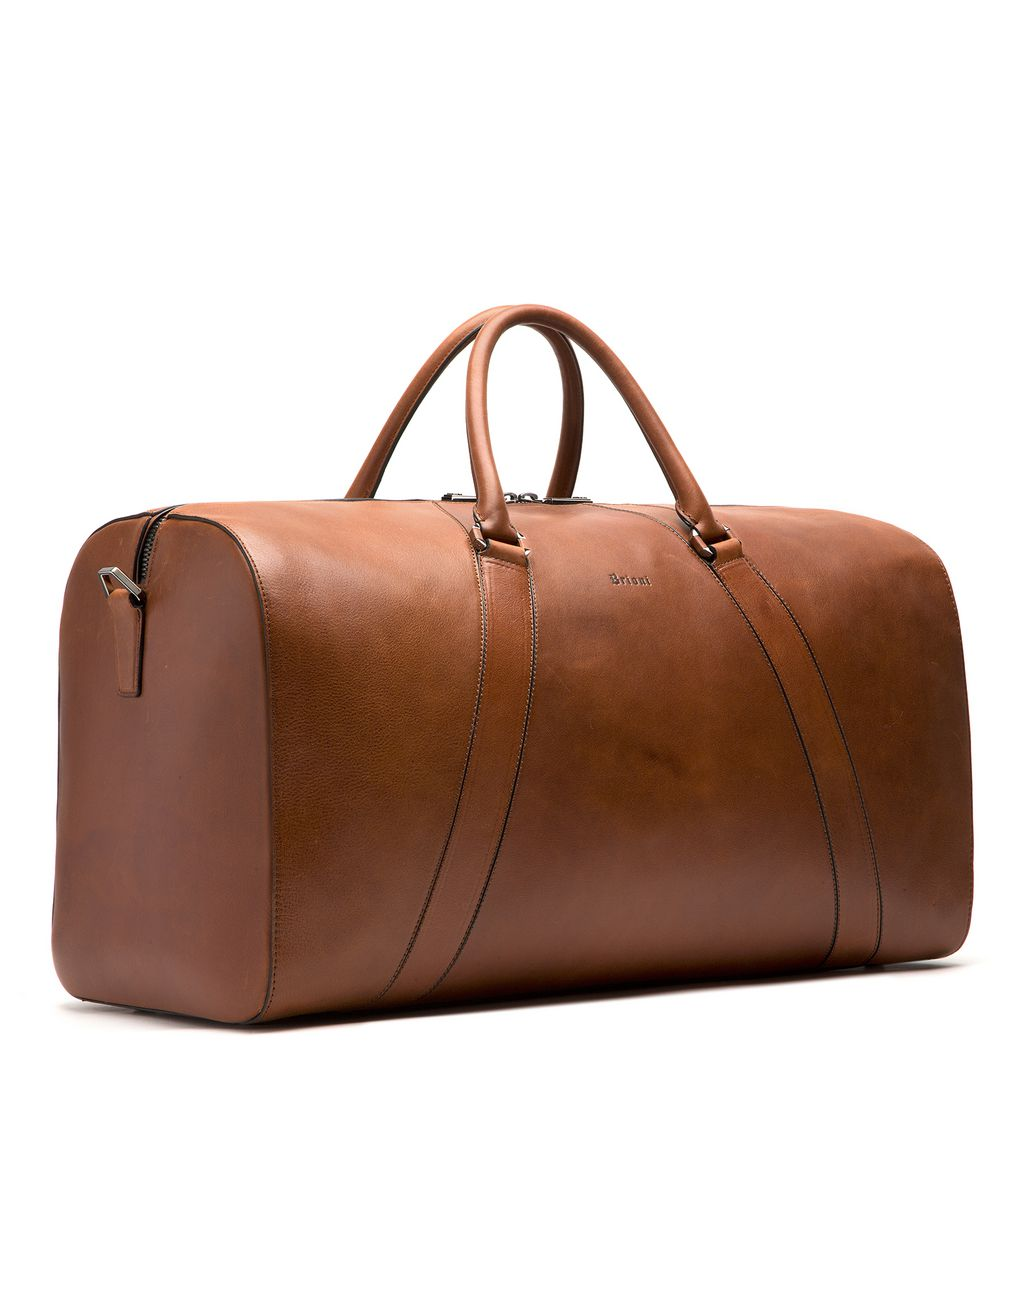 BRIONI Tobacco Brown Travel Bag in Calfskin Bag Man d